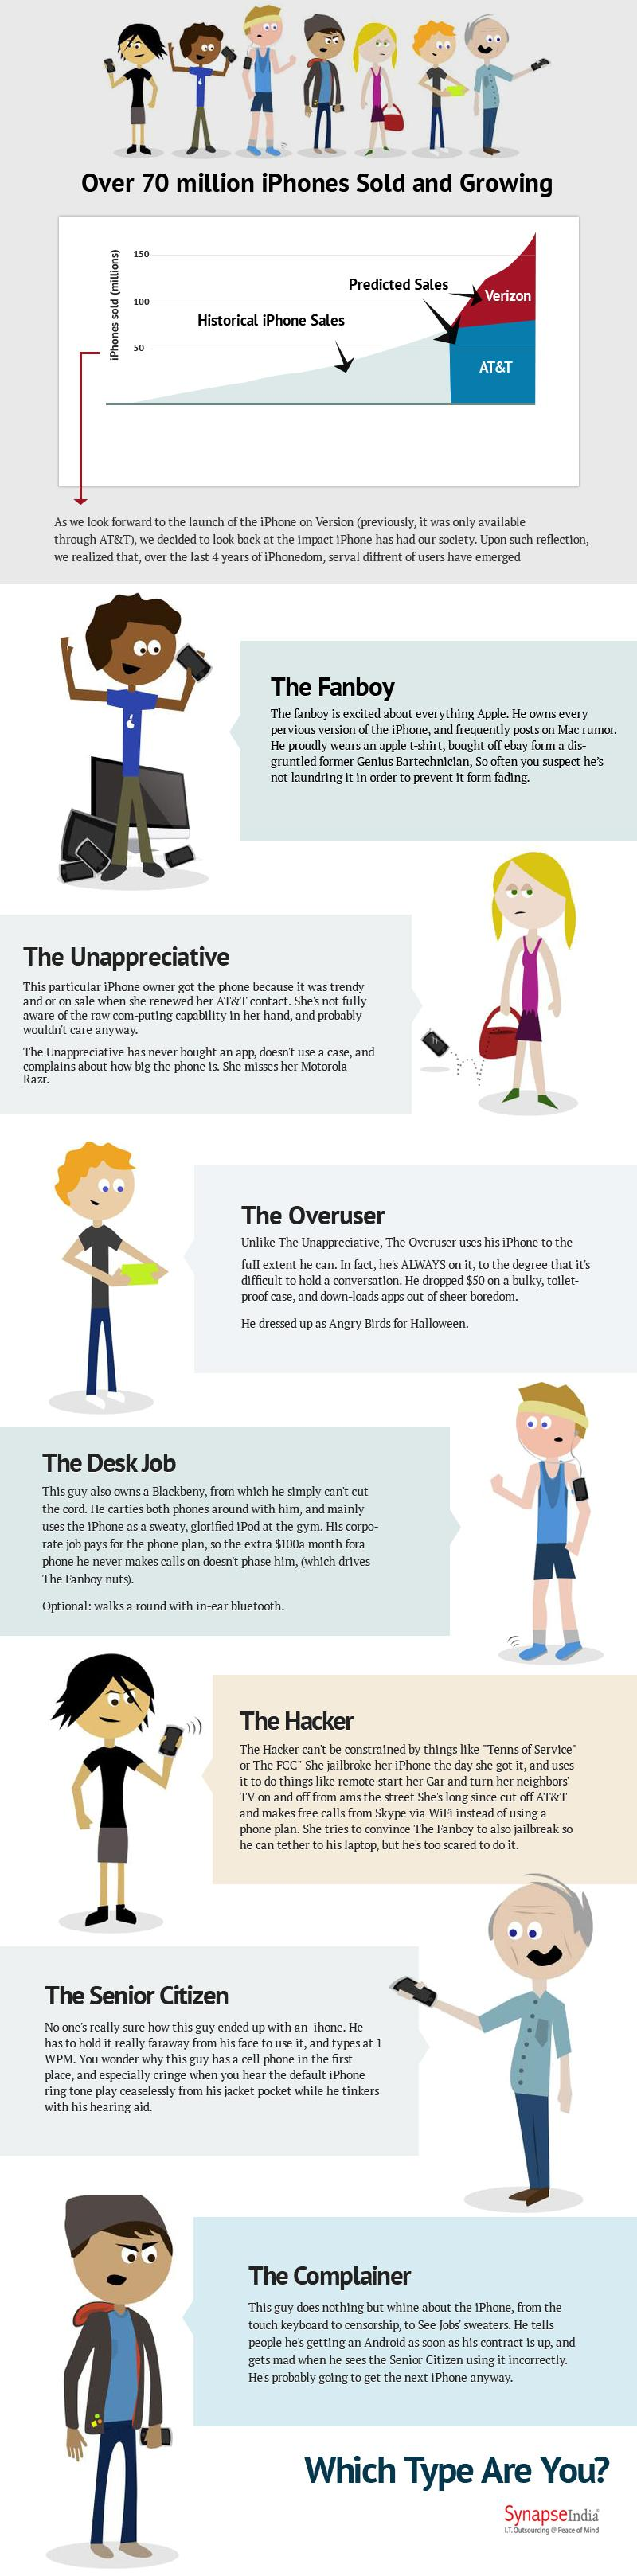 7 Types of iPhone Owners